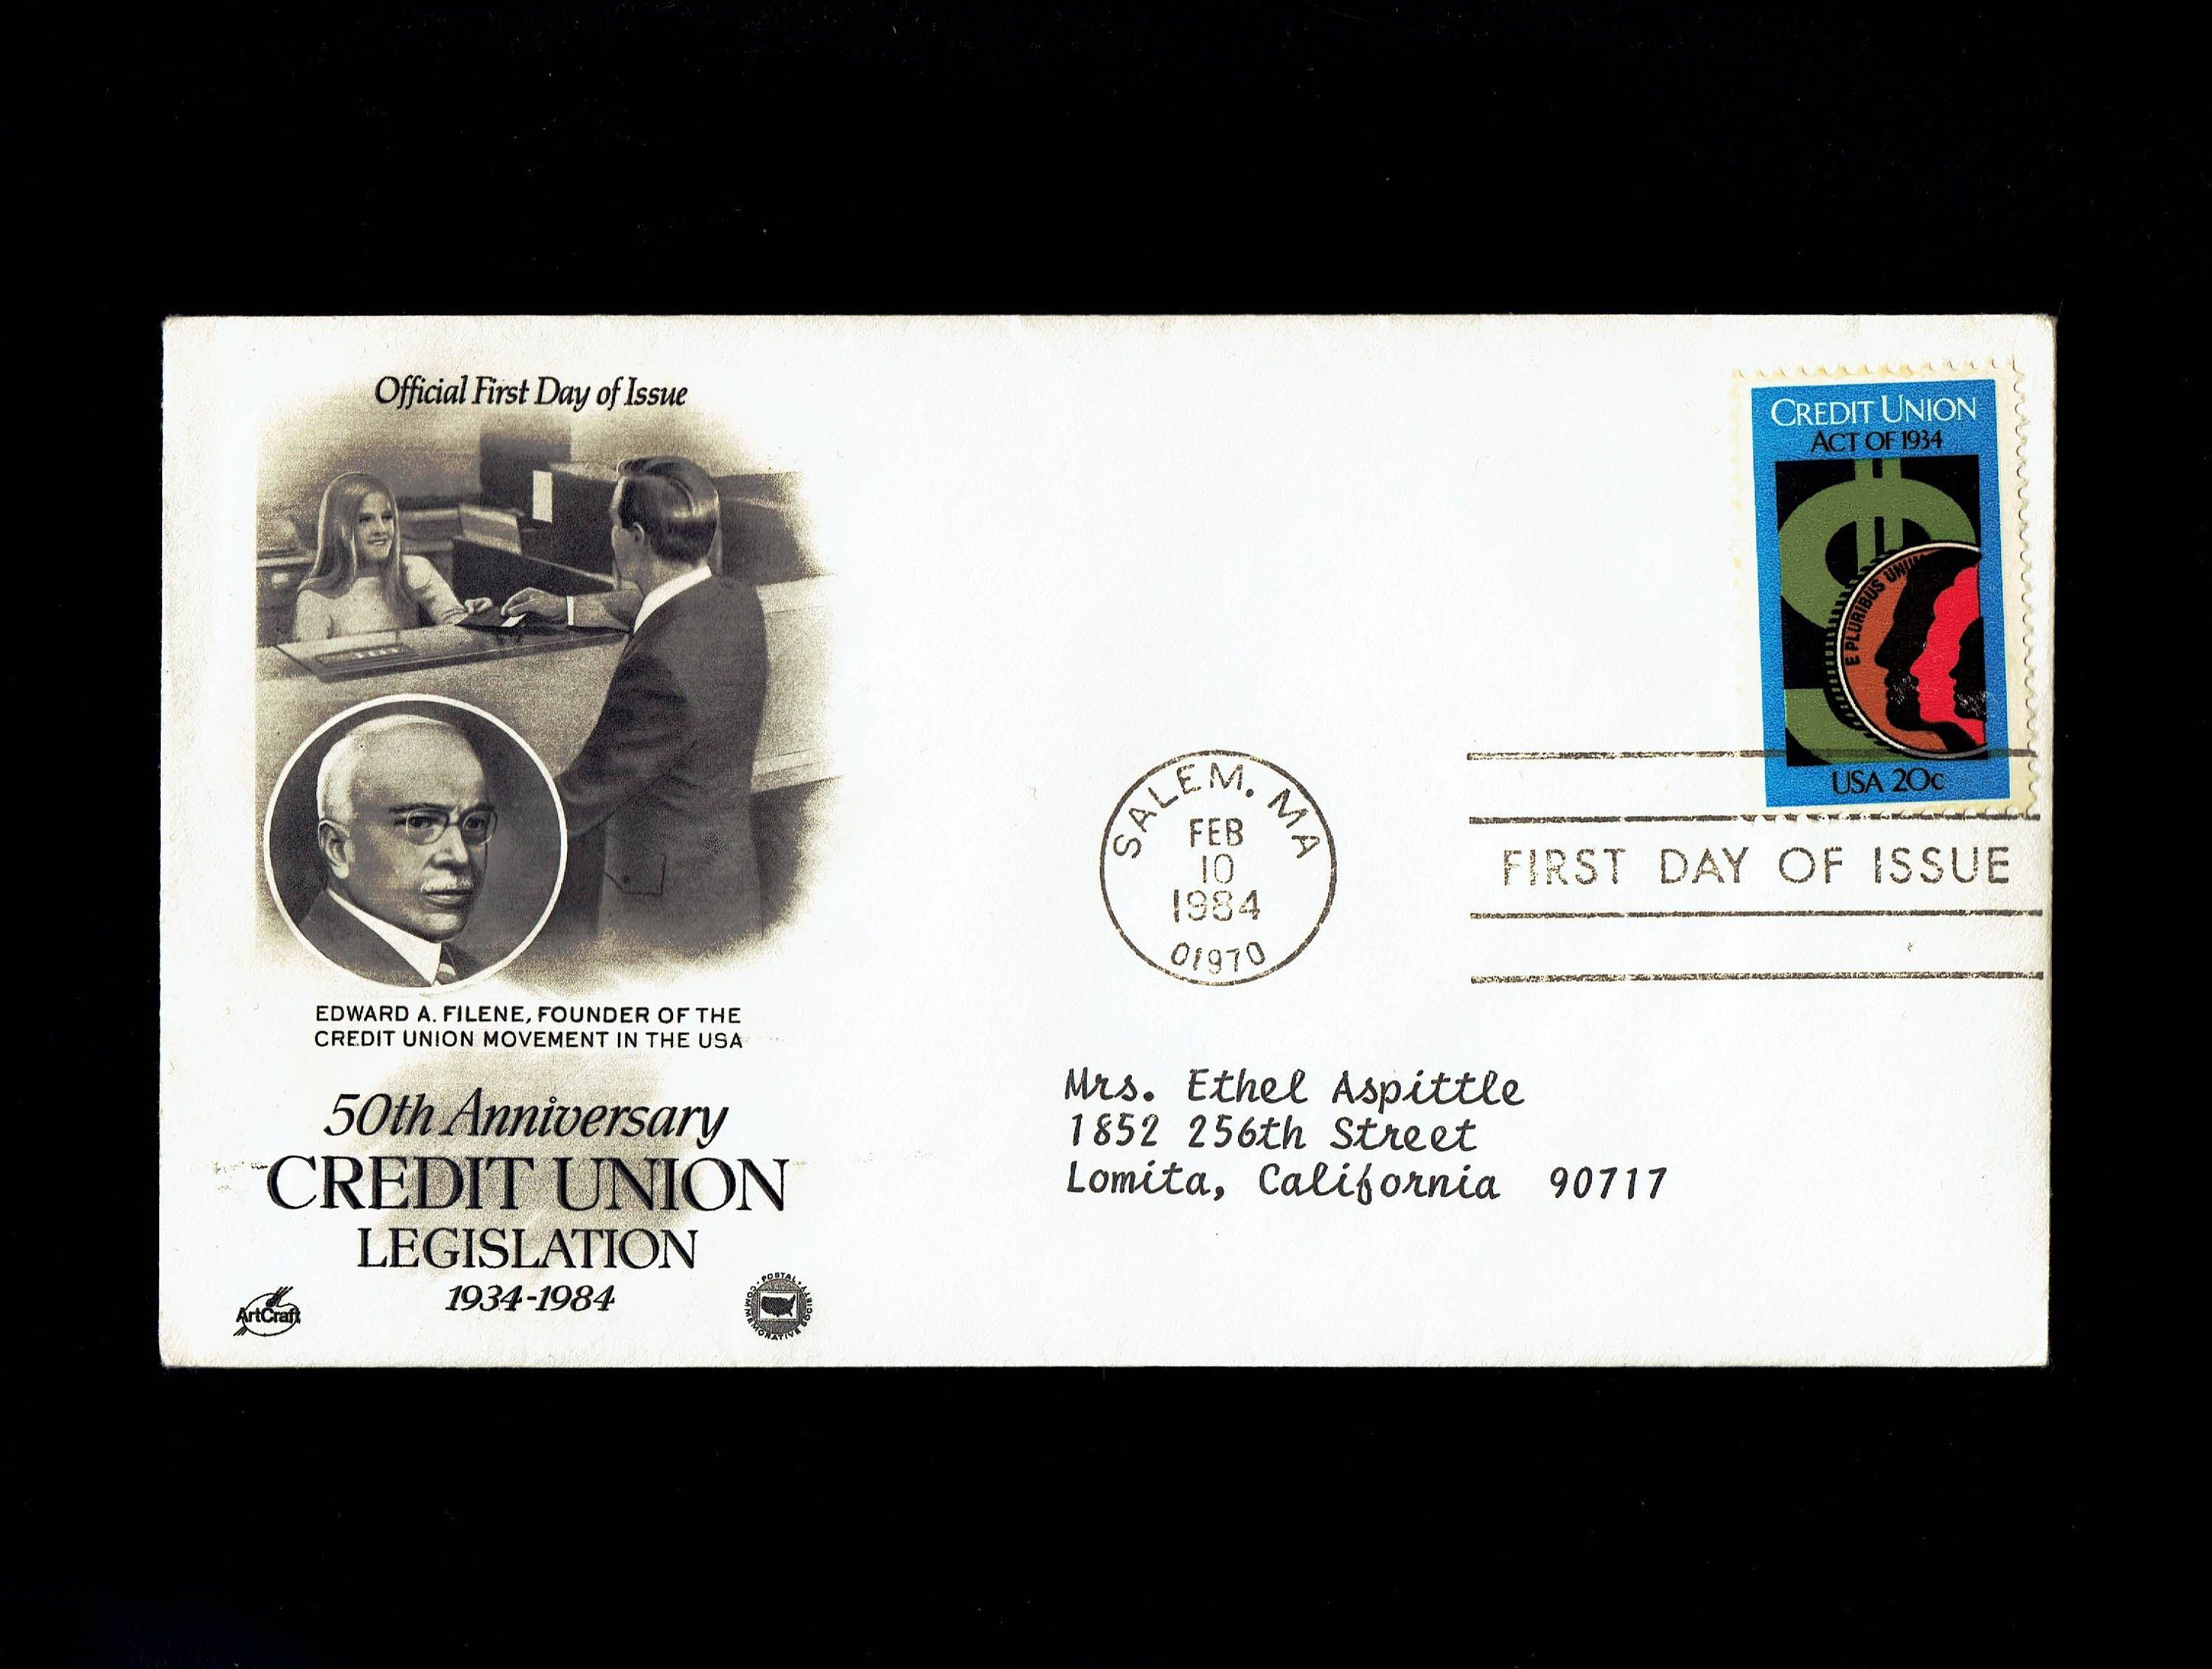 US 2075 Credit Union Act of 1934 Feb 10, 1984 Salem MA First Day Cover lot #F2075-1 by VicsStamps on Etsy